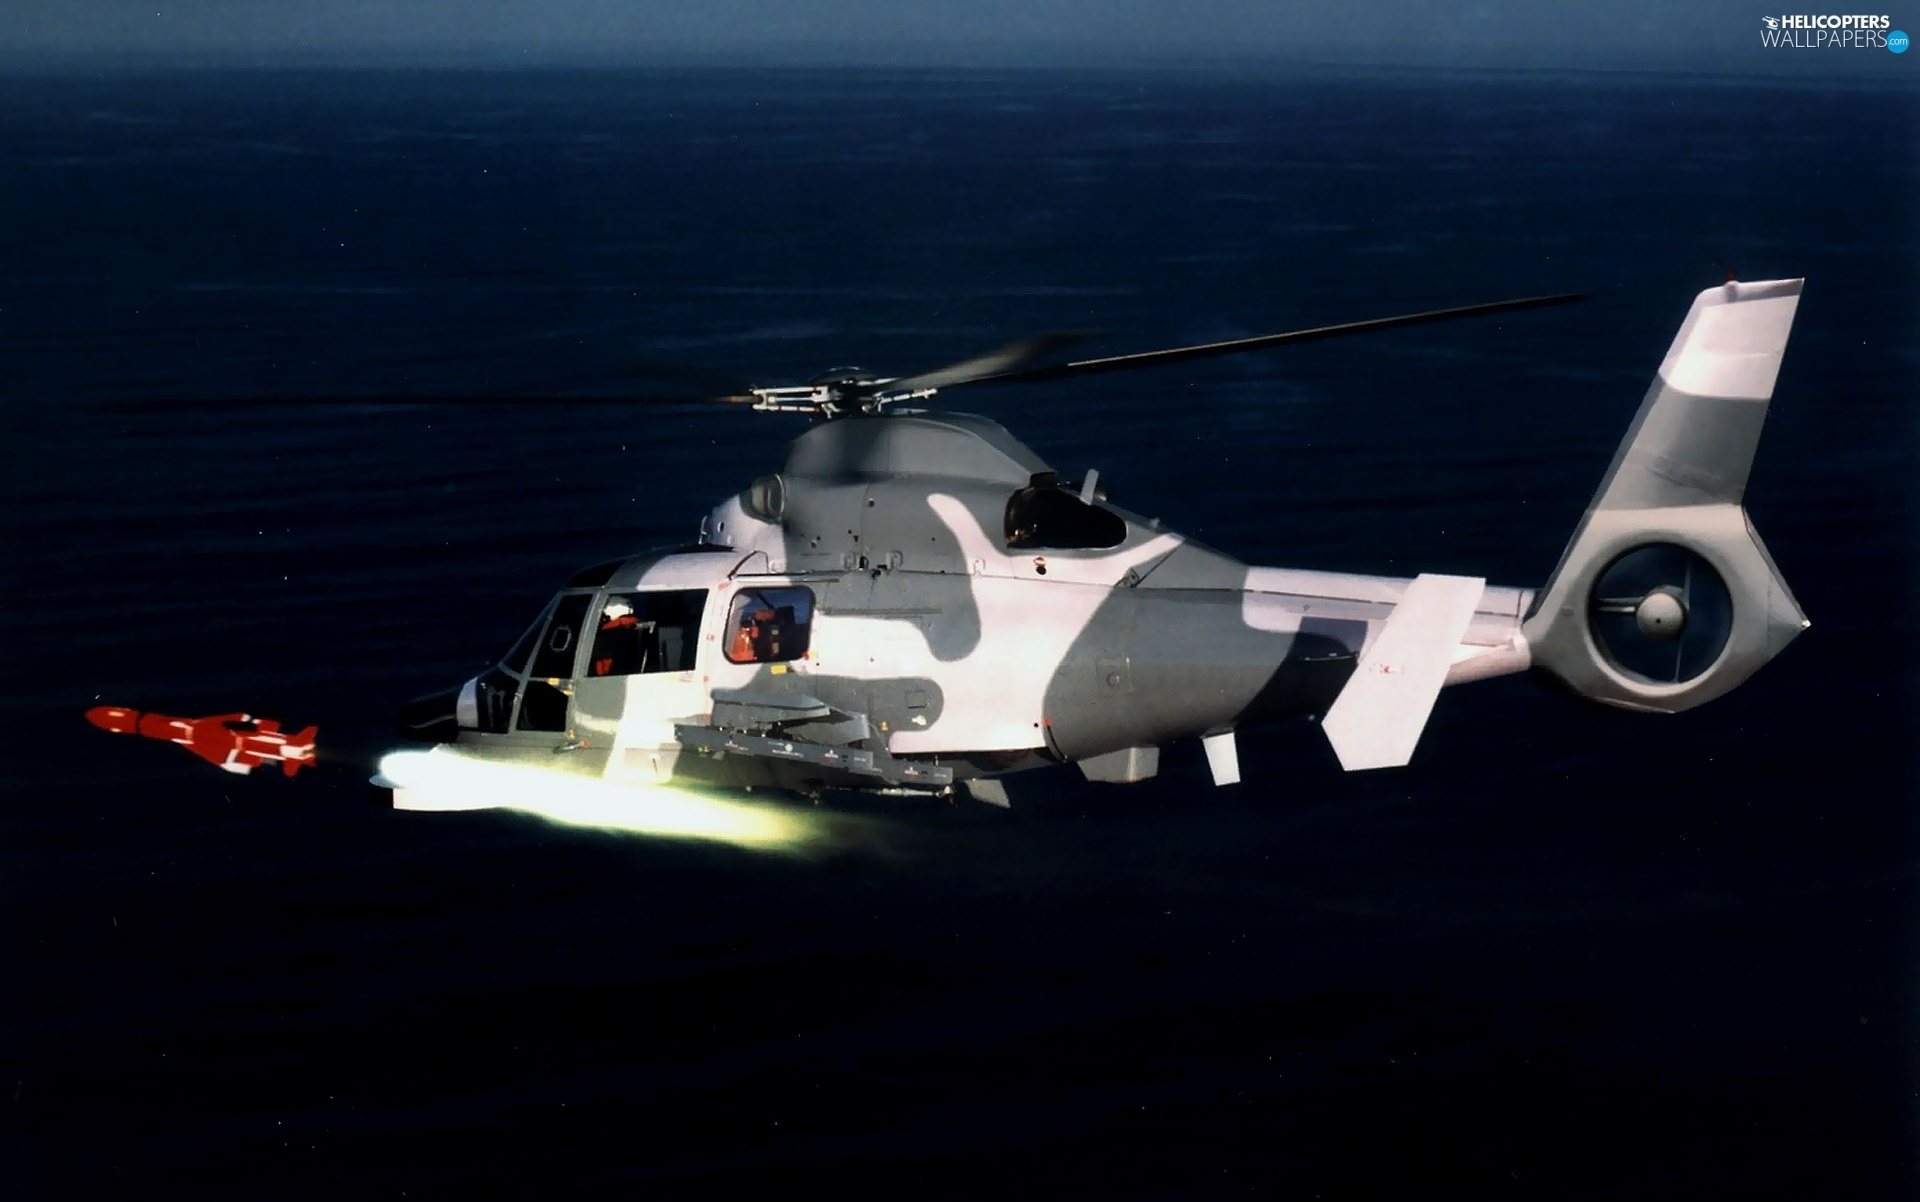 hughes helicopters with Backgrounds Rocket 565 As Eurocopter Panther on Backgrounds rocket 565 As Eurocopter Panther further 29 Md Helicopters likewise Oh 6 additionally 996 also Pic Detail.